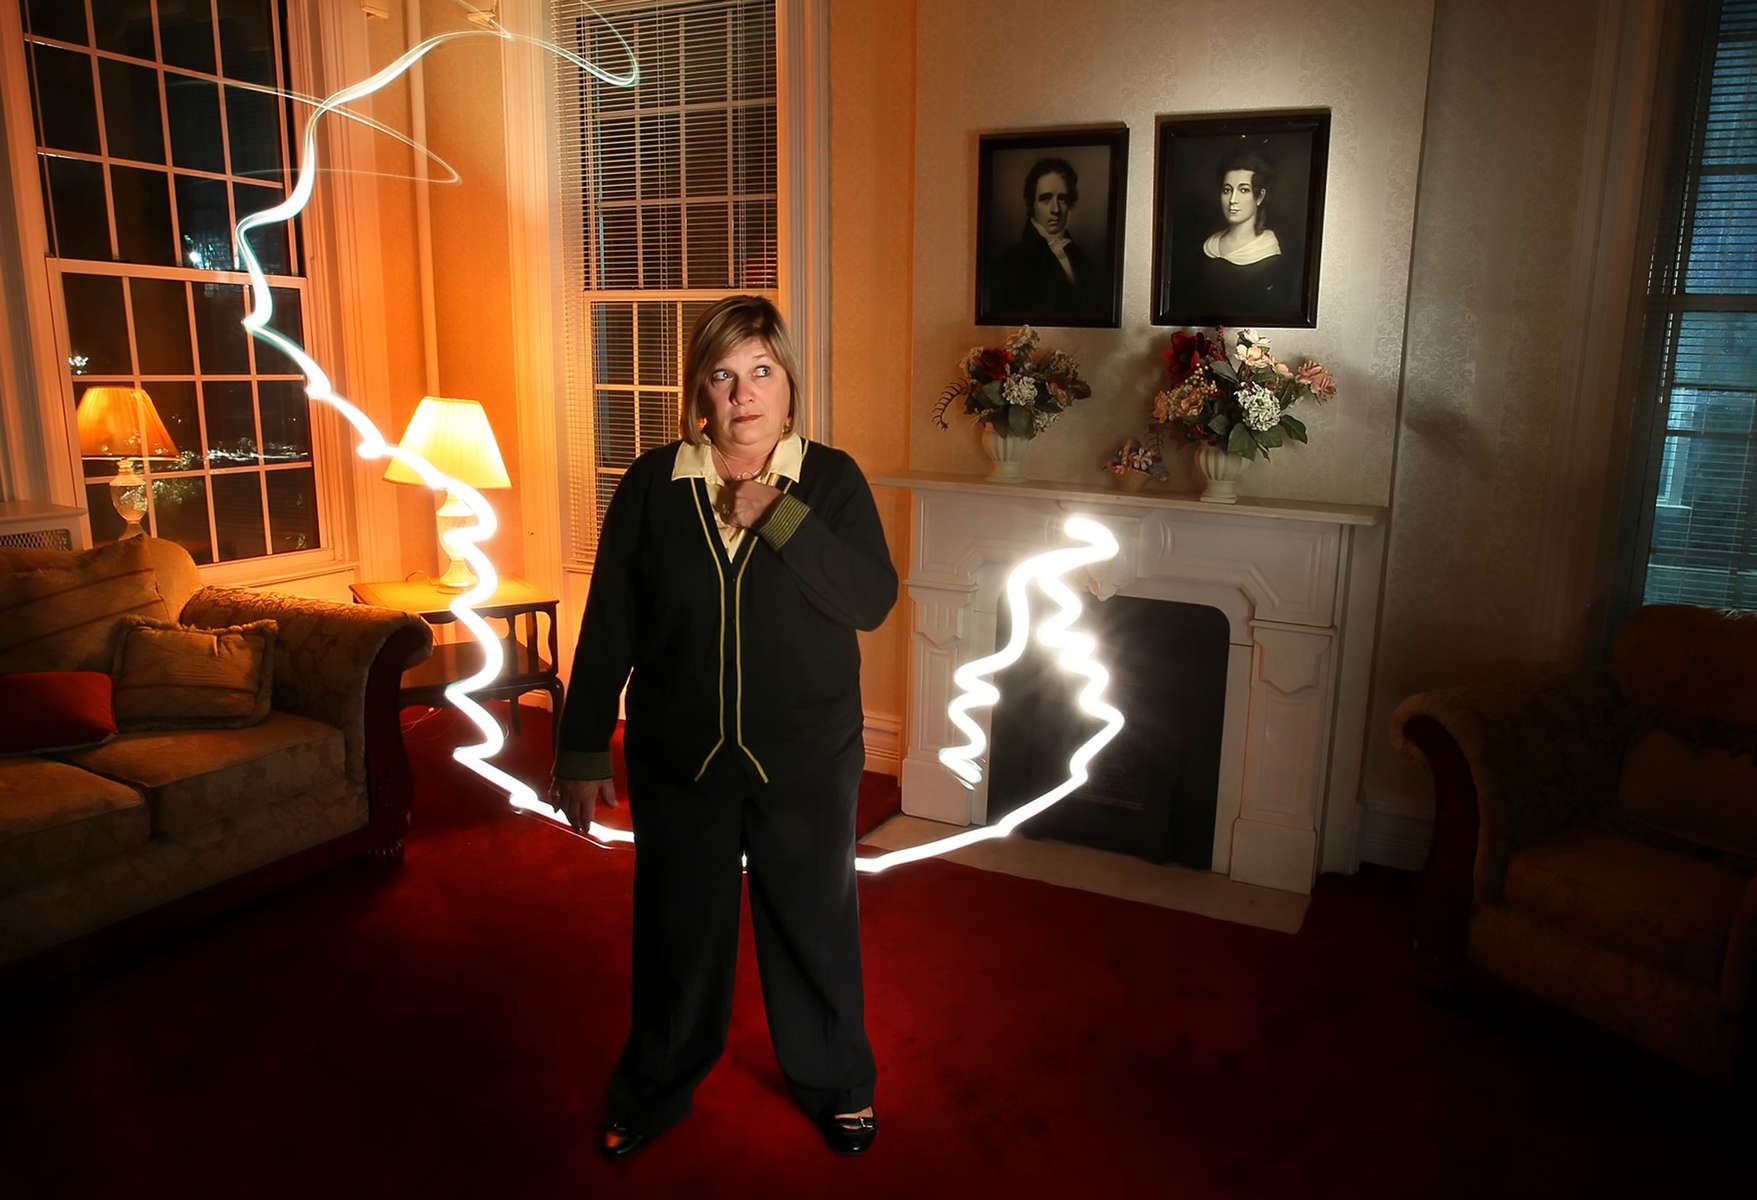 Michelle Giessman, director of student housing at Lindenwood, stands in the common area of Sibley Hall on the Lindenwood campus in St. Charles. For decades, freshman at Lindenwood University have heard the tales about deceased founder Mary Sibley roaming the campus, Giessman and a few professors and long time staffers say the stories are real. A picture of Mary Sibley can be seen to the right hanging on the wall. This image was made during a 15 second exposure using a flashlight to light the room, the technique is called painting with light.